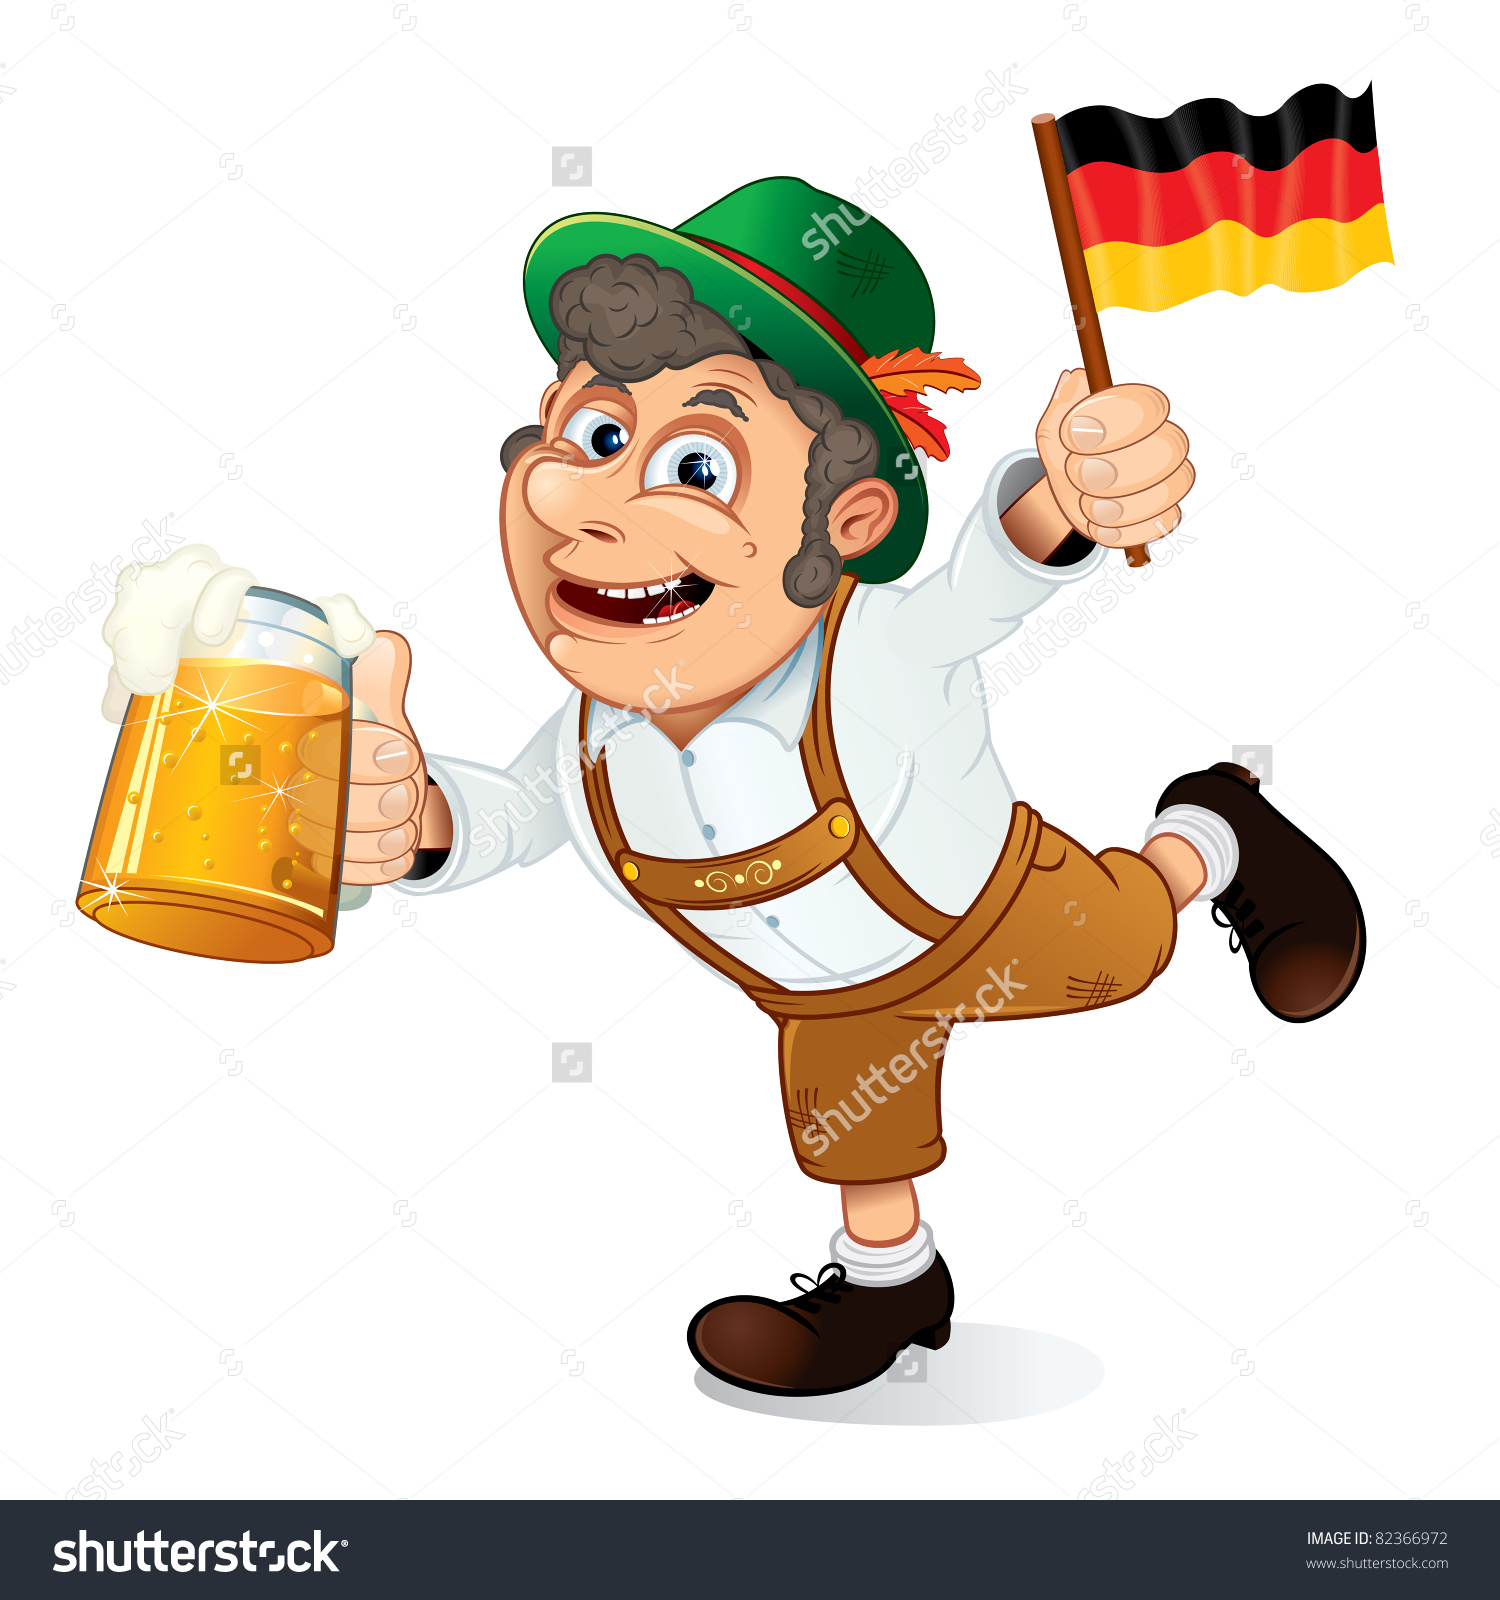 Funny Oktoberfest Man Beer Stein Flag Stock Vector 82366972.